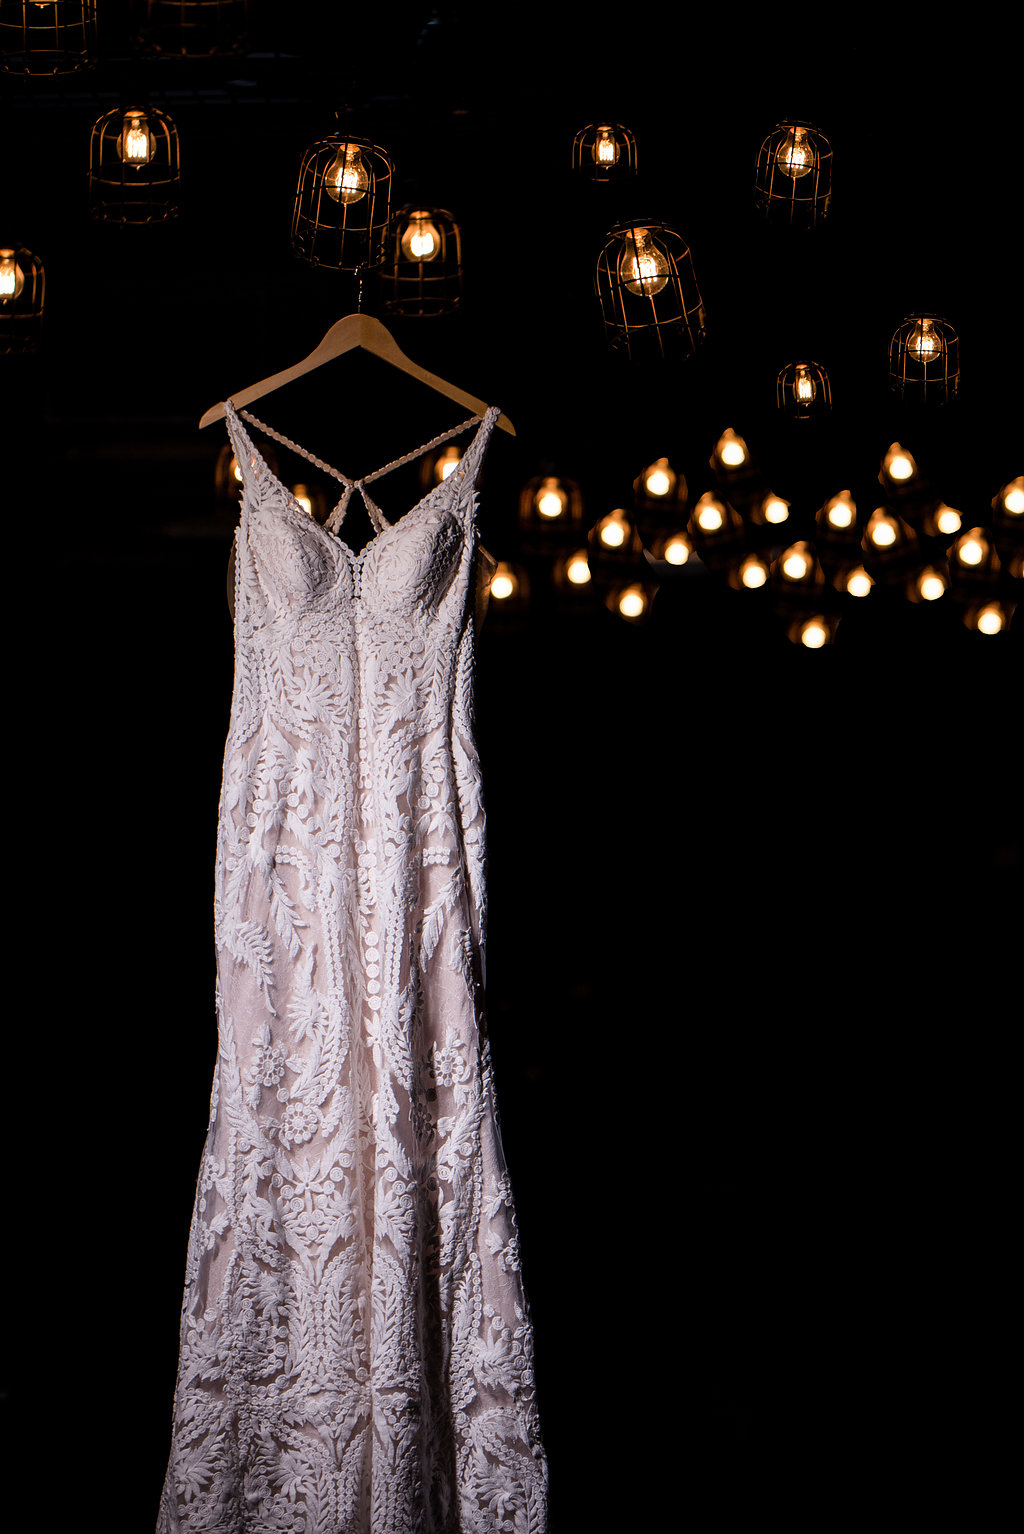 Detail shot of a hanging wedding dress in a brewery,part of a Boho Brewery WeddingStyled Shoot at Triple C Barrel Room in Charlotte NC. Wedding dress is from Paige and Elliot.